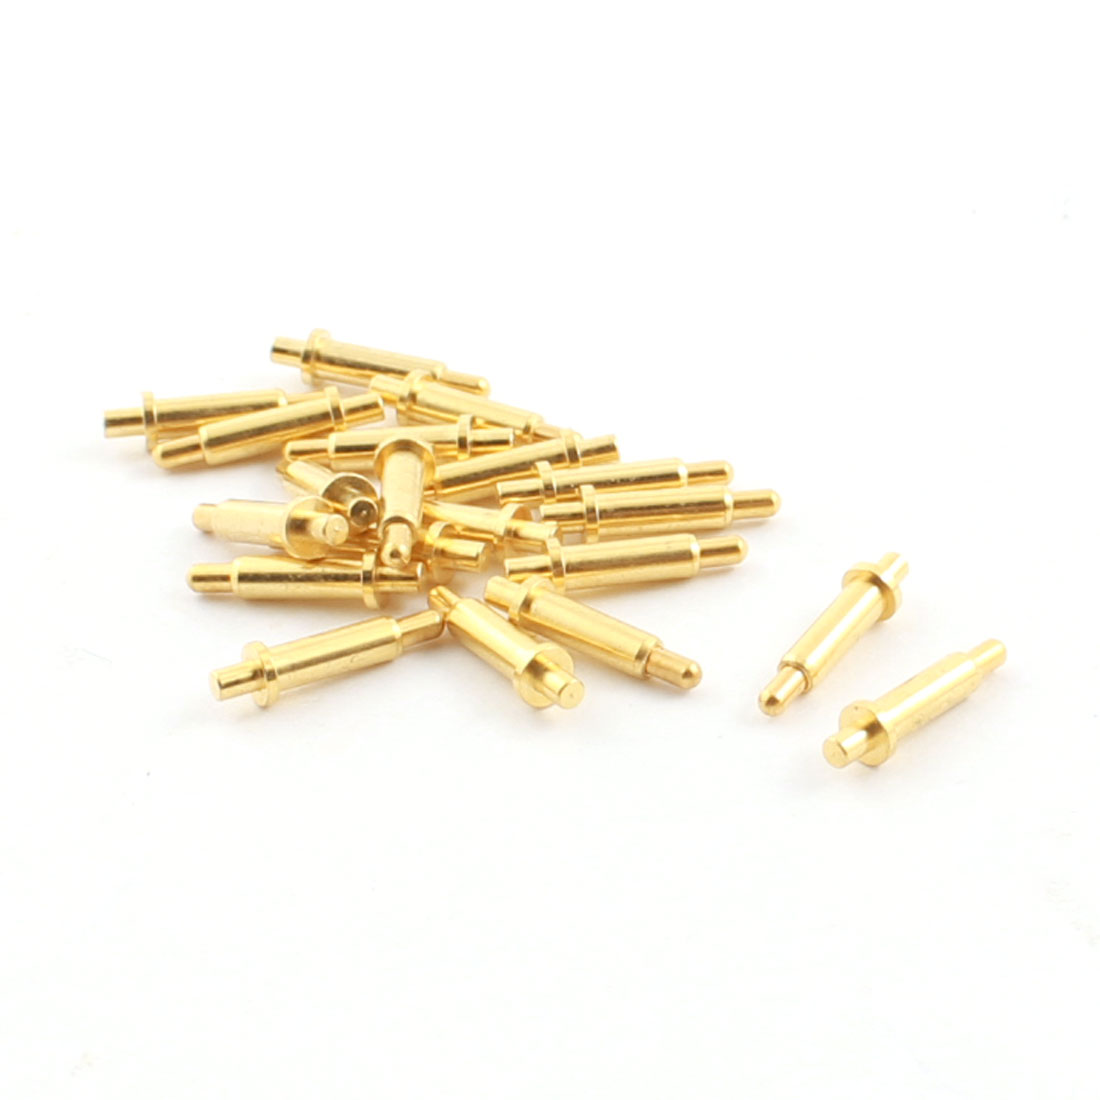 20Pcs Torx Head Tip Mini Gold Tone Metal Spring Test Pin Probe 1.4mm Dia 11mm Length